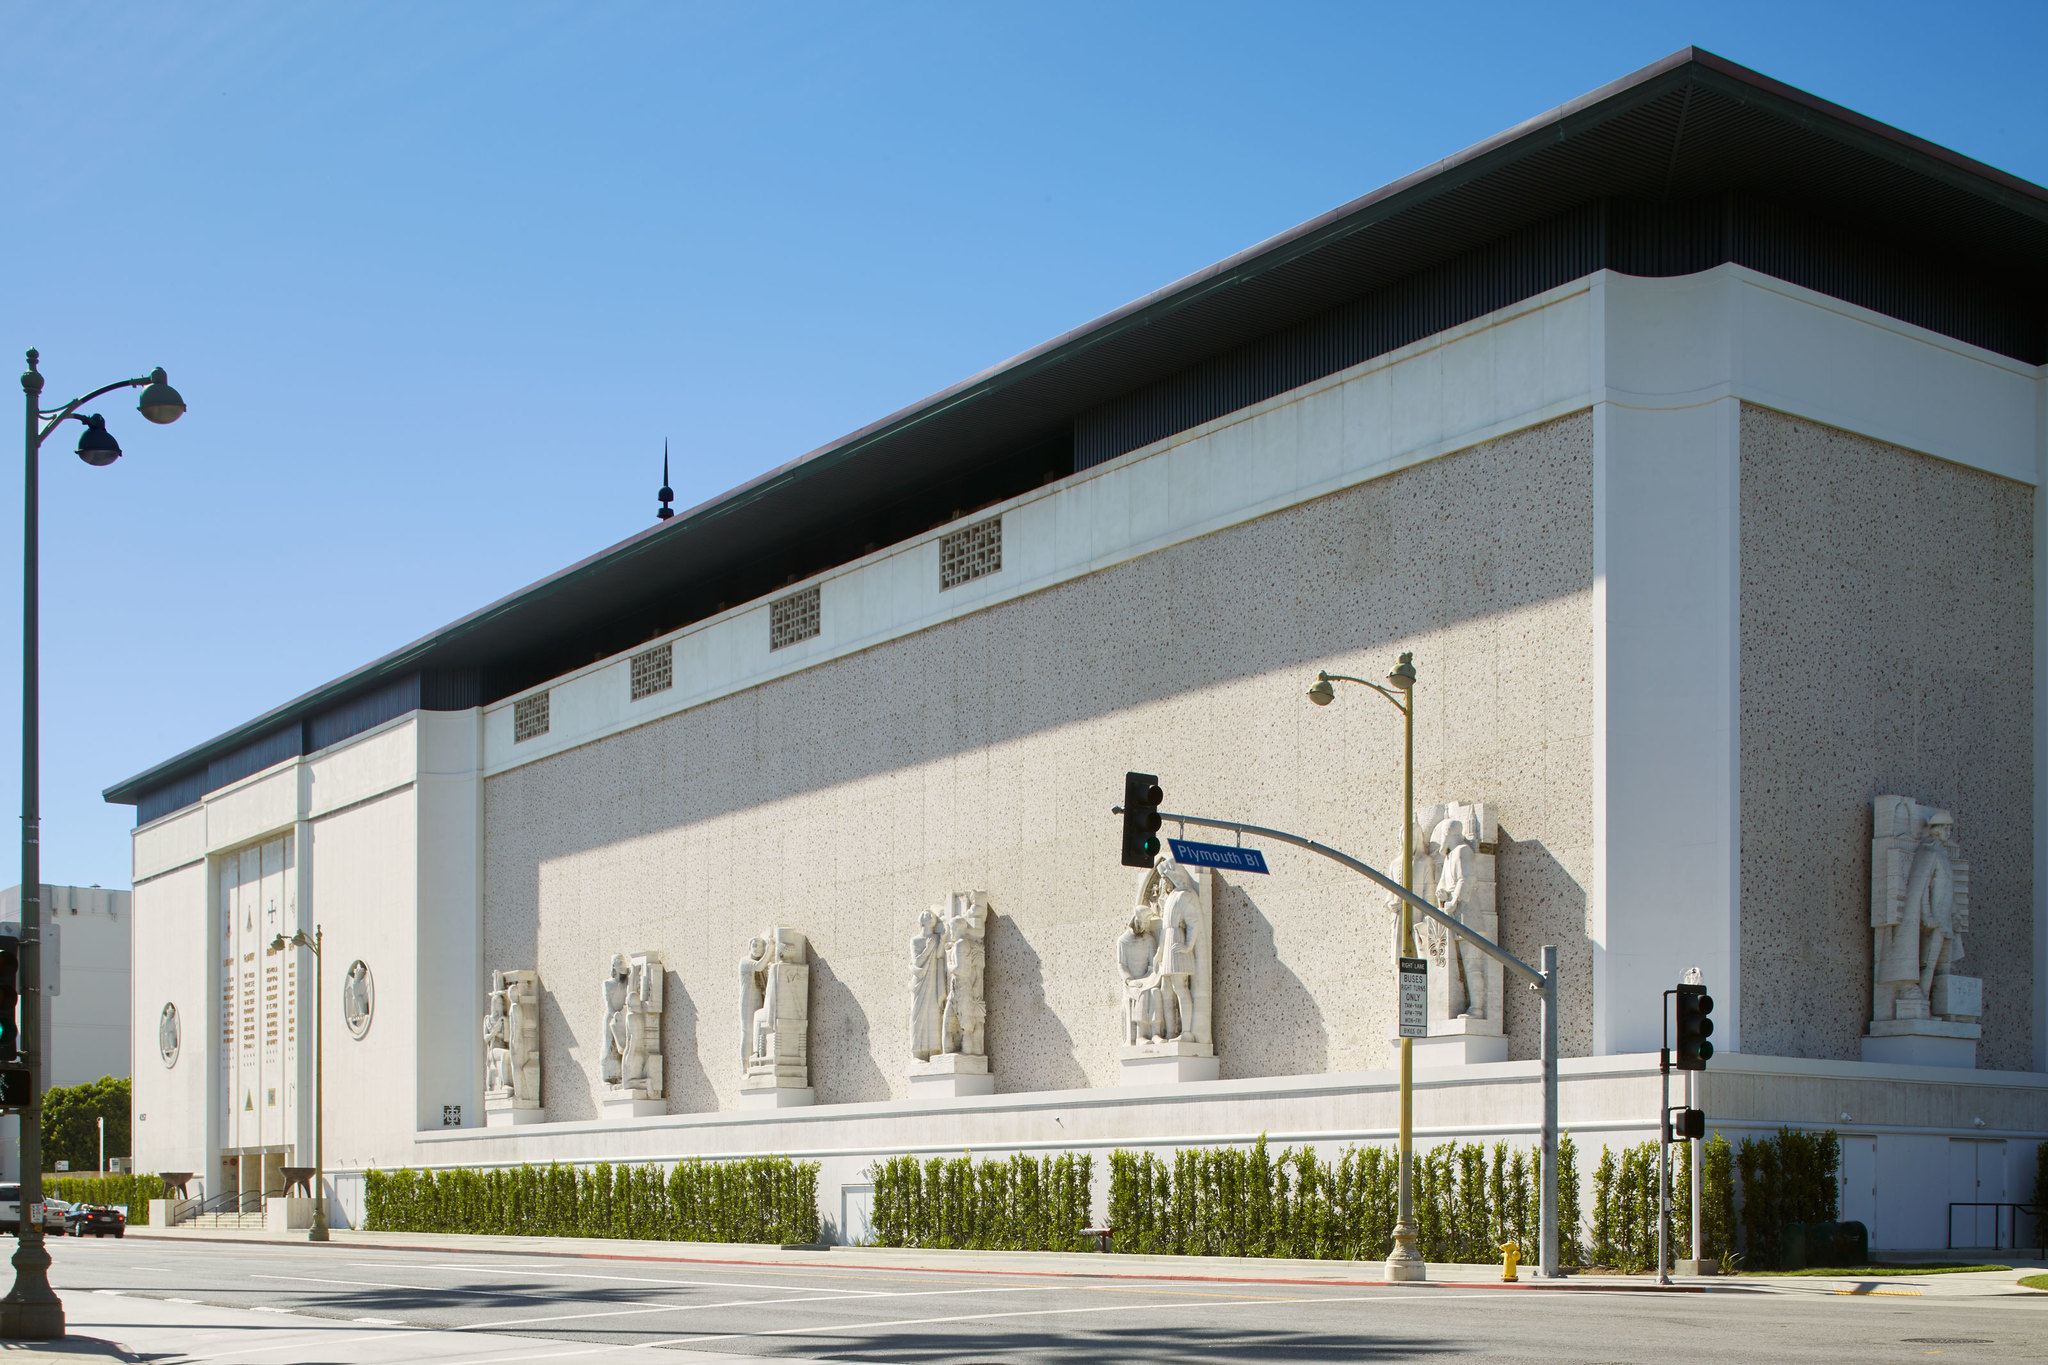 The exterior of the Marciano Art Foundation, housed in the former Scottish Rite Masonic Temple on Wilshire Boulevard in Los Angeles.